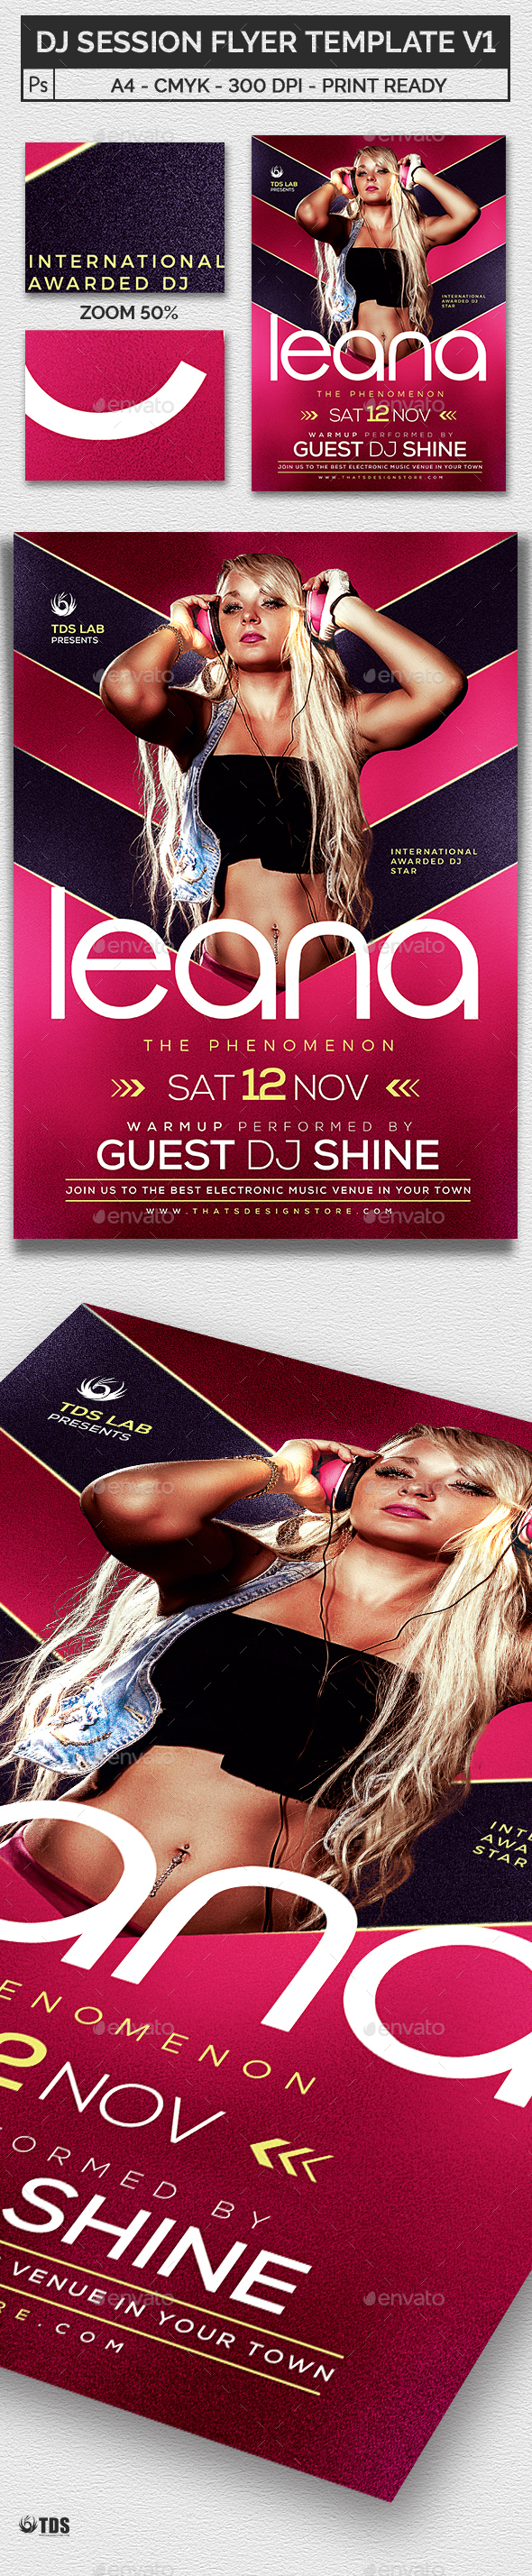 DJ Session Flyer Template V1 - Clubs & Parties Events